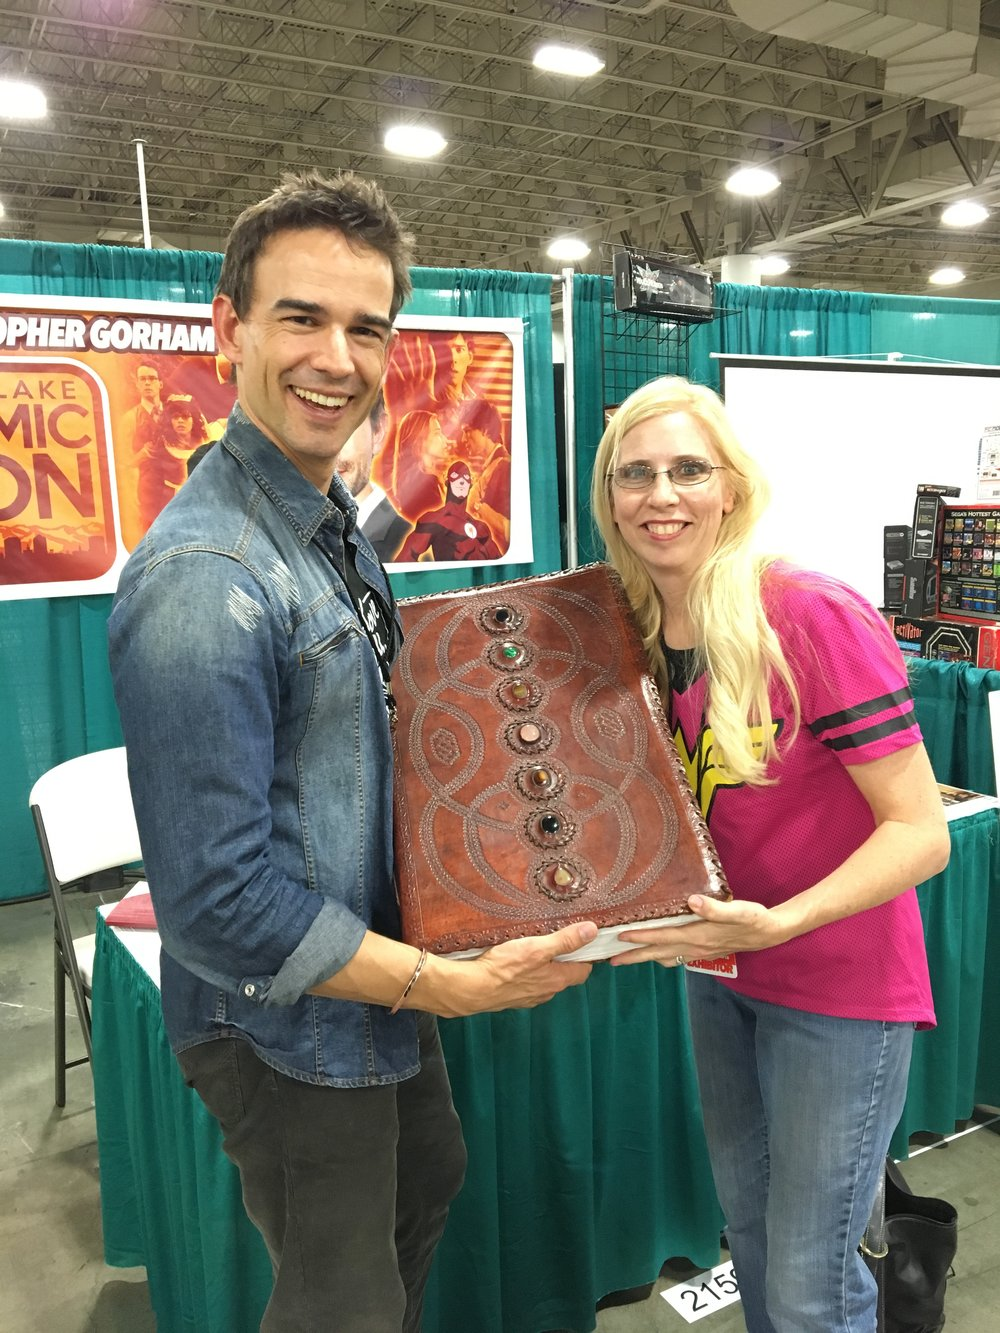 Christopher Gorham and Robin Glassey with the Big Book